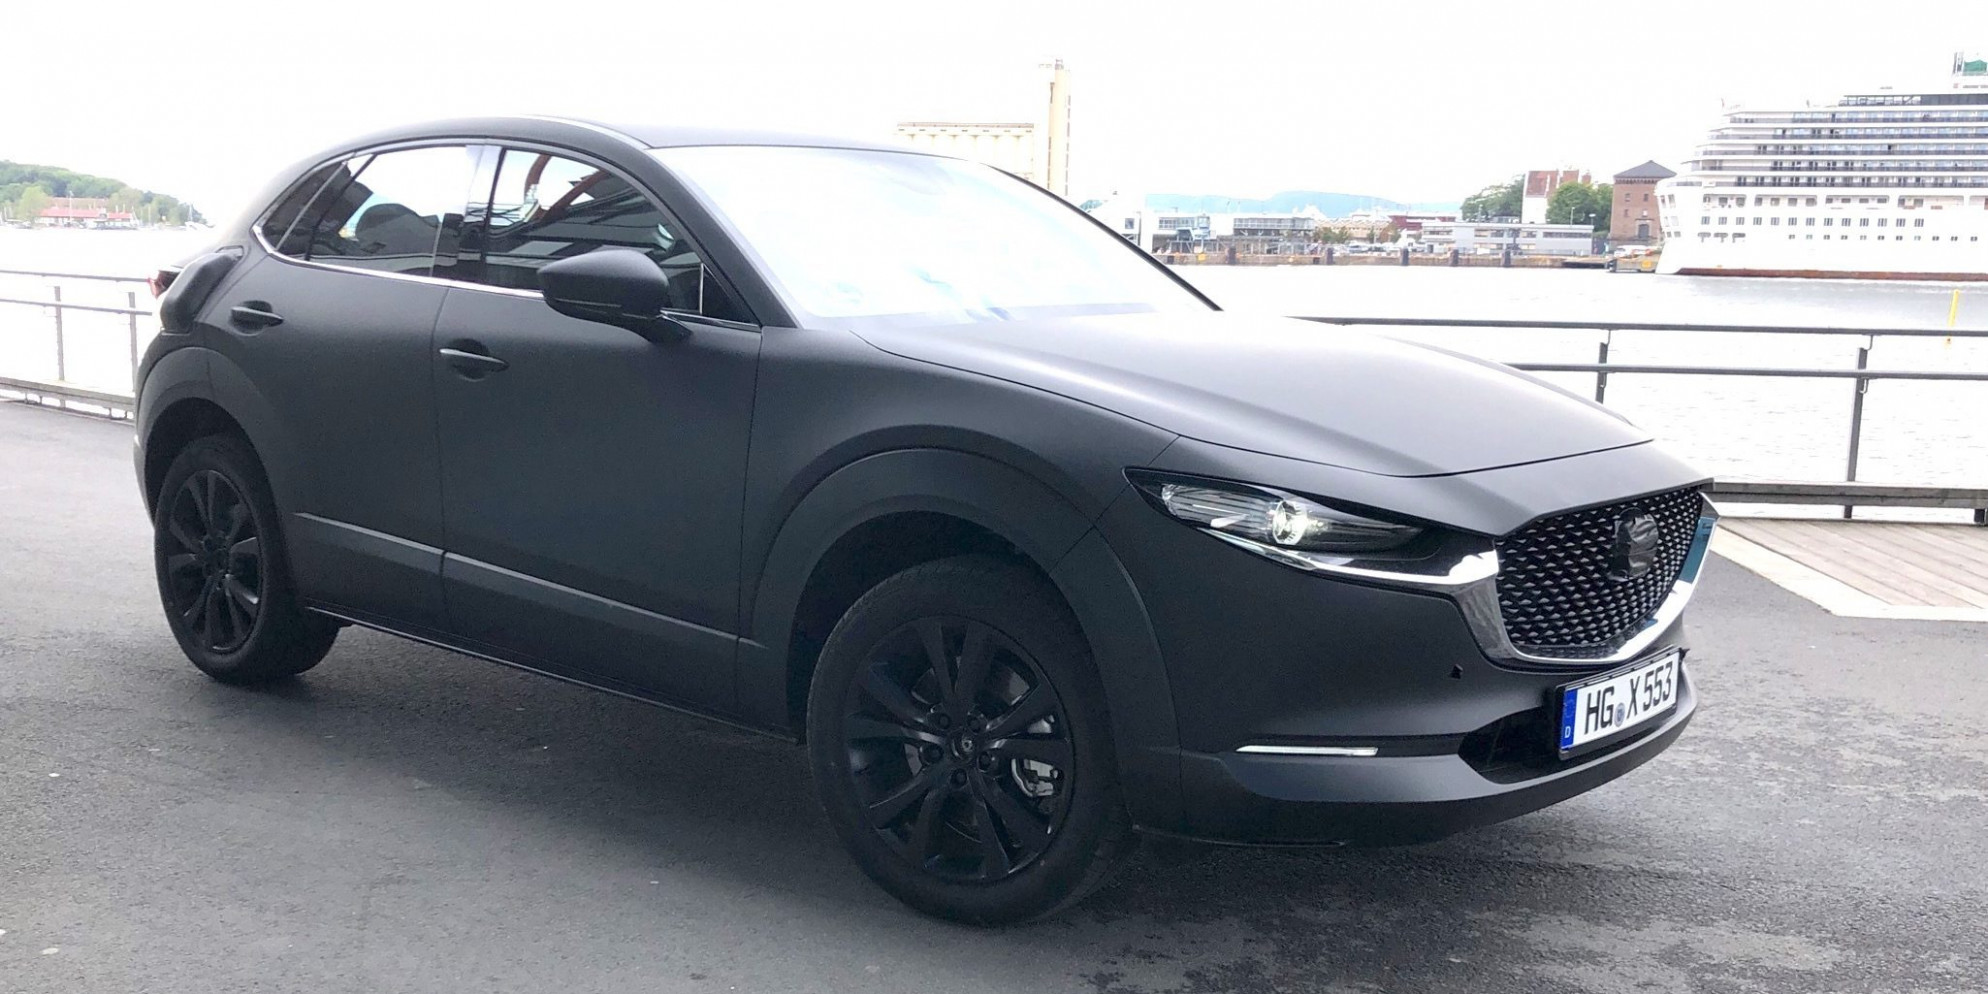 Mazda's first electric car spotted testing, looks like a CX-8 ...